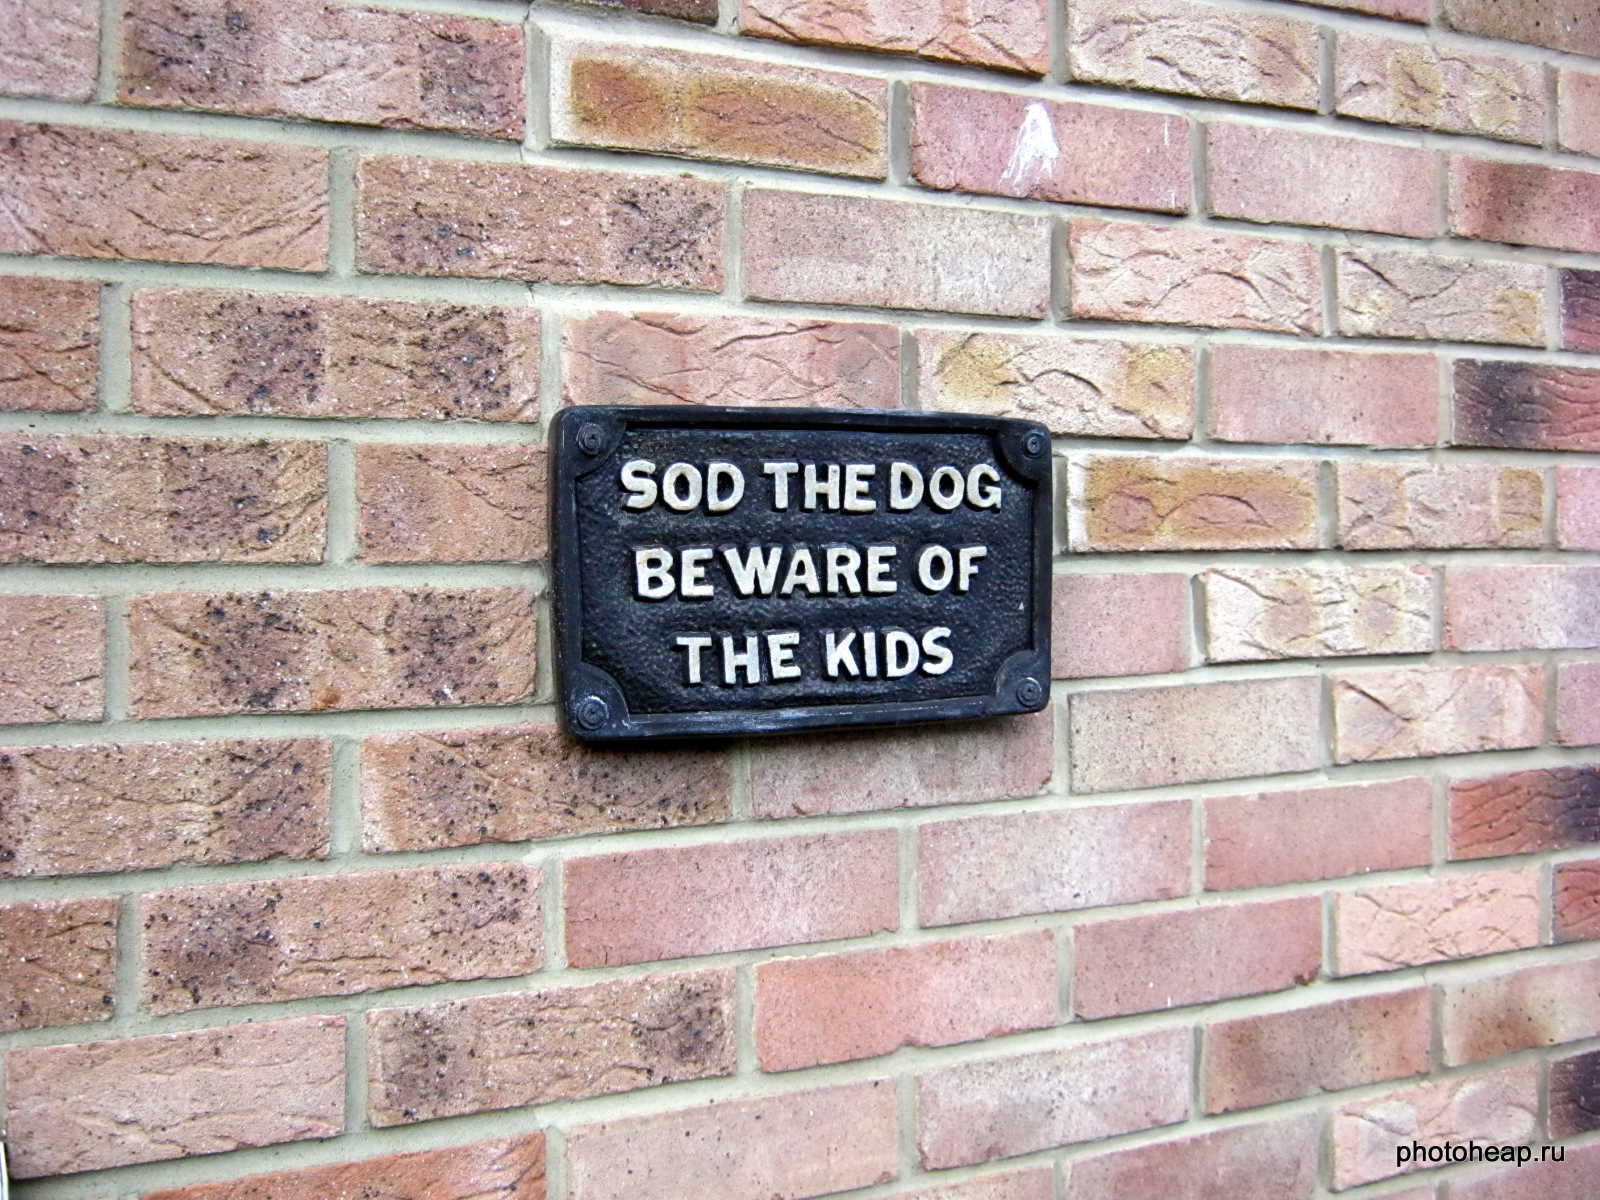 Sod the dog beware of the kids